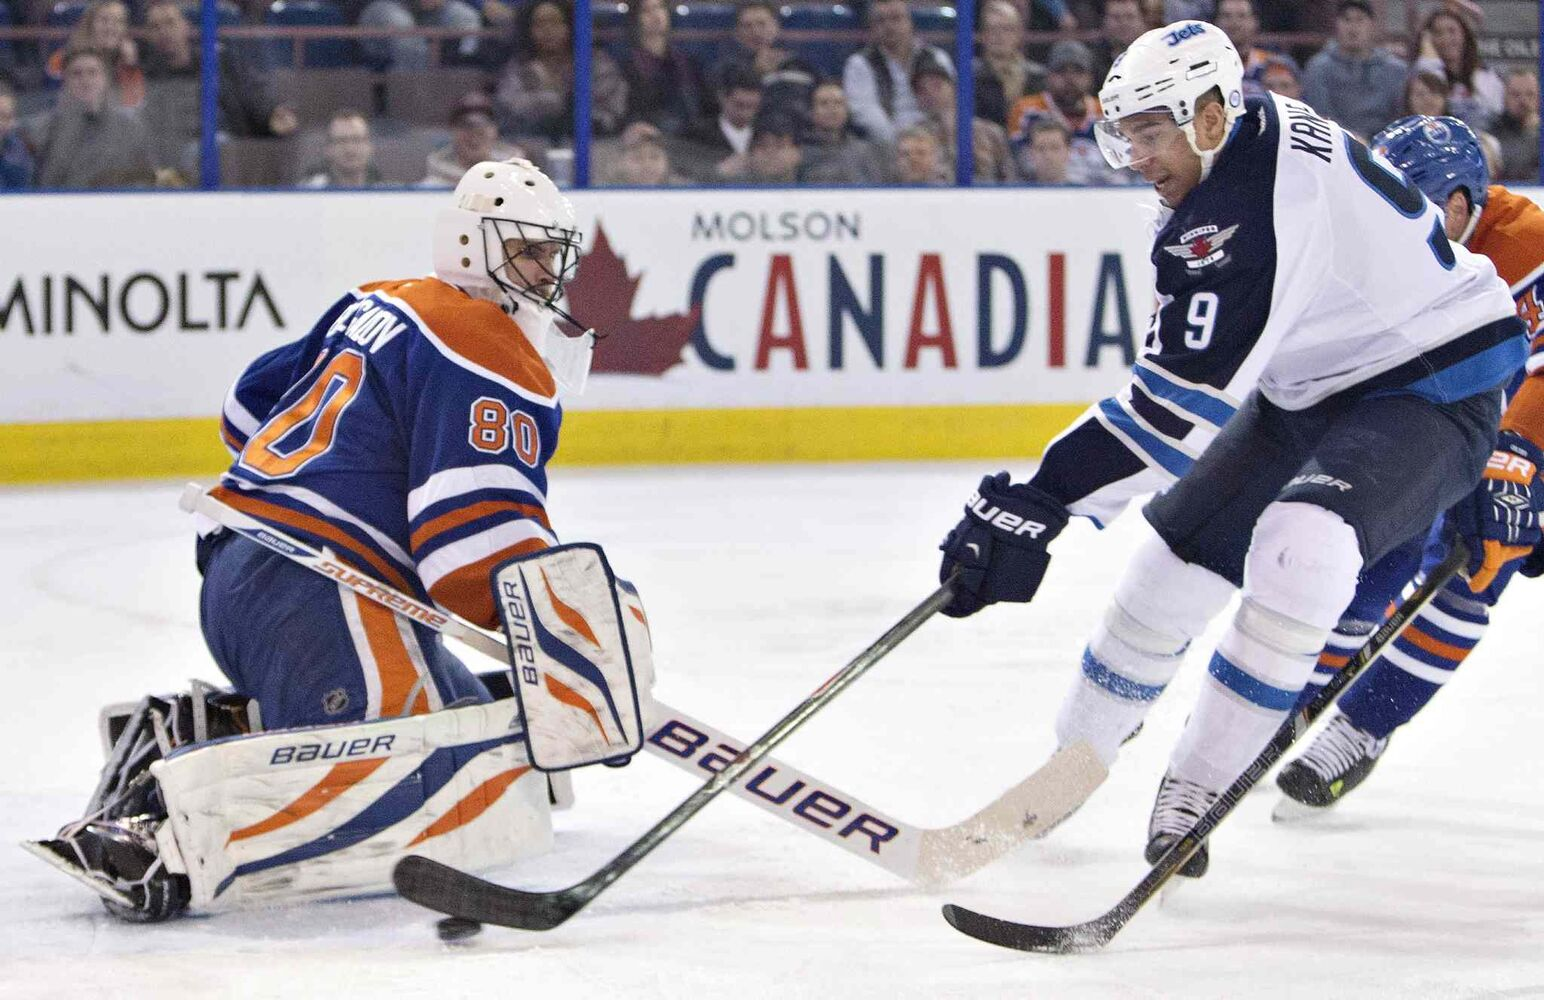 Winnipeg Jets' Evander Kane (9) is stopped by Edmonton Oilers goalie Ilya Bryzgalov (80) during first period NHL hockey action in Edmonton, Alta., on Monday. (Jason Franson / The Canadian Press)